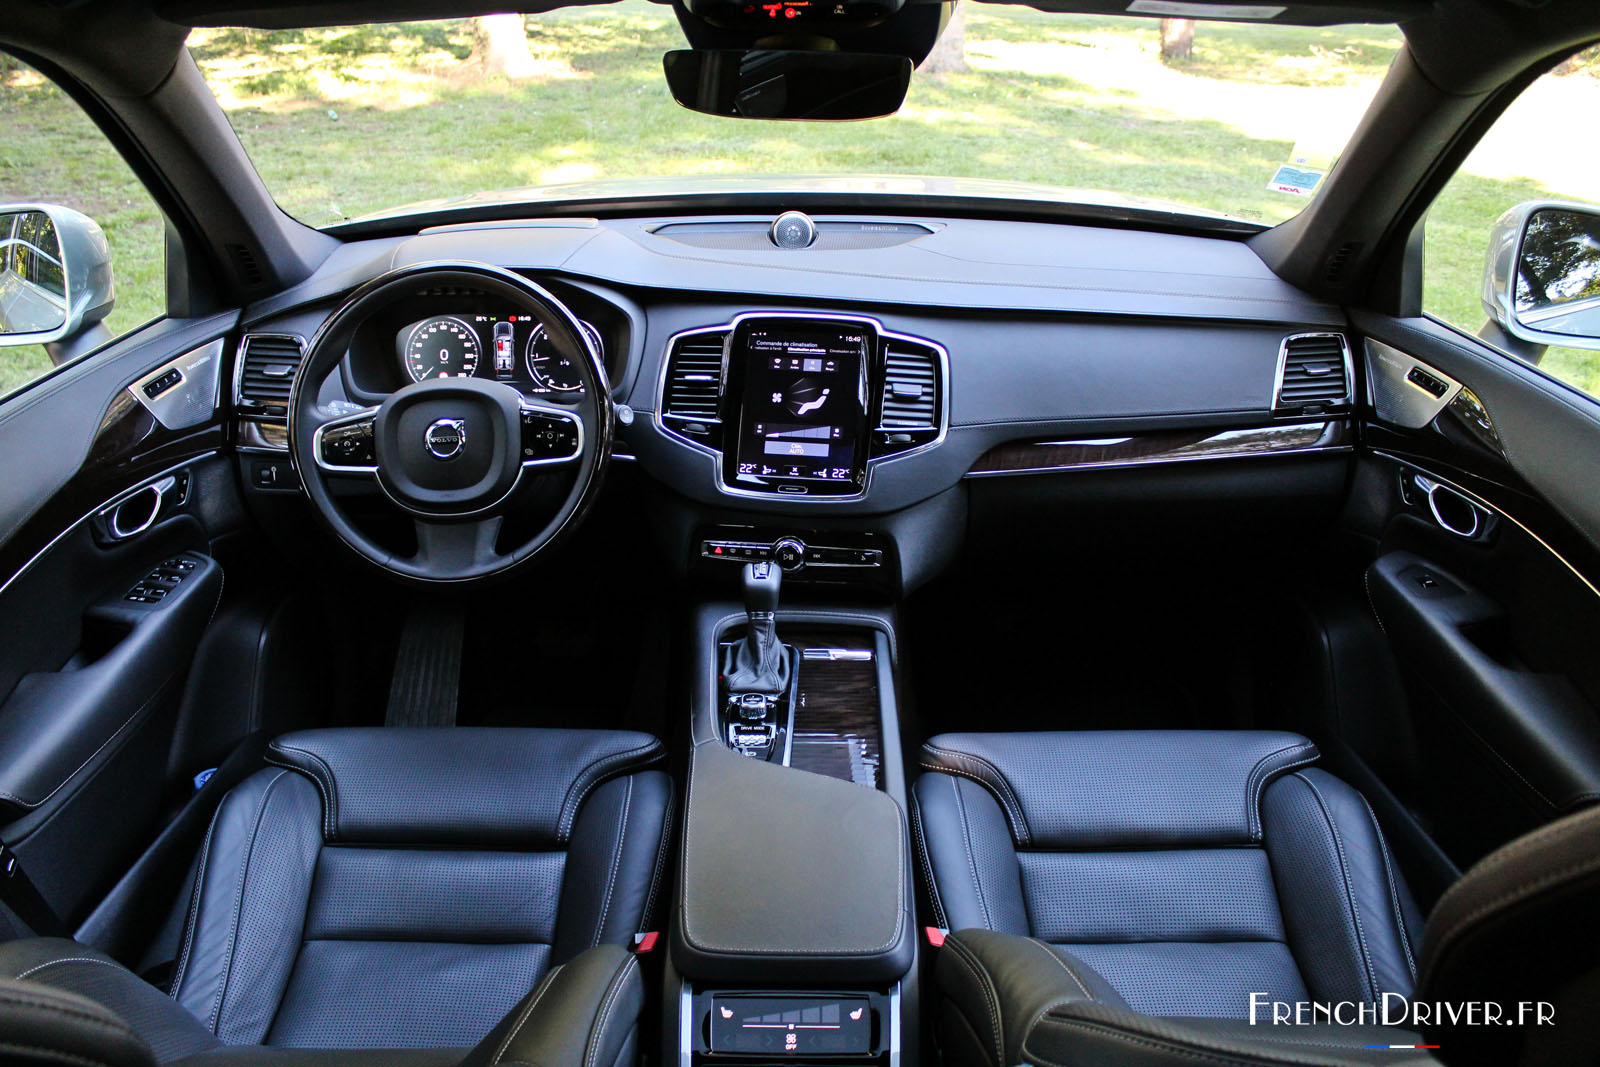 essai du volvo xc90 2015 le coffre fort french driver. Black Bedroom Furniture Sets. Home Design Ideas